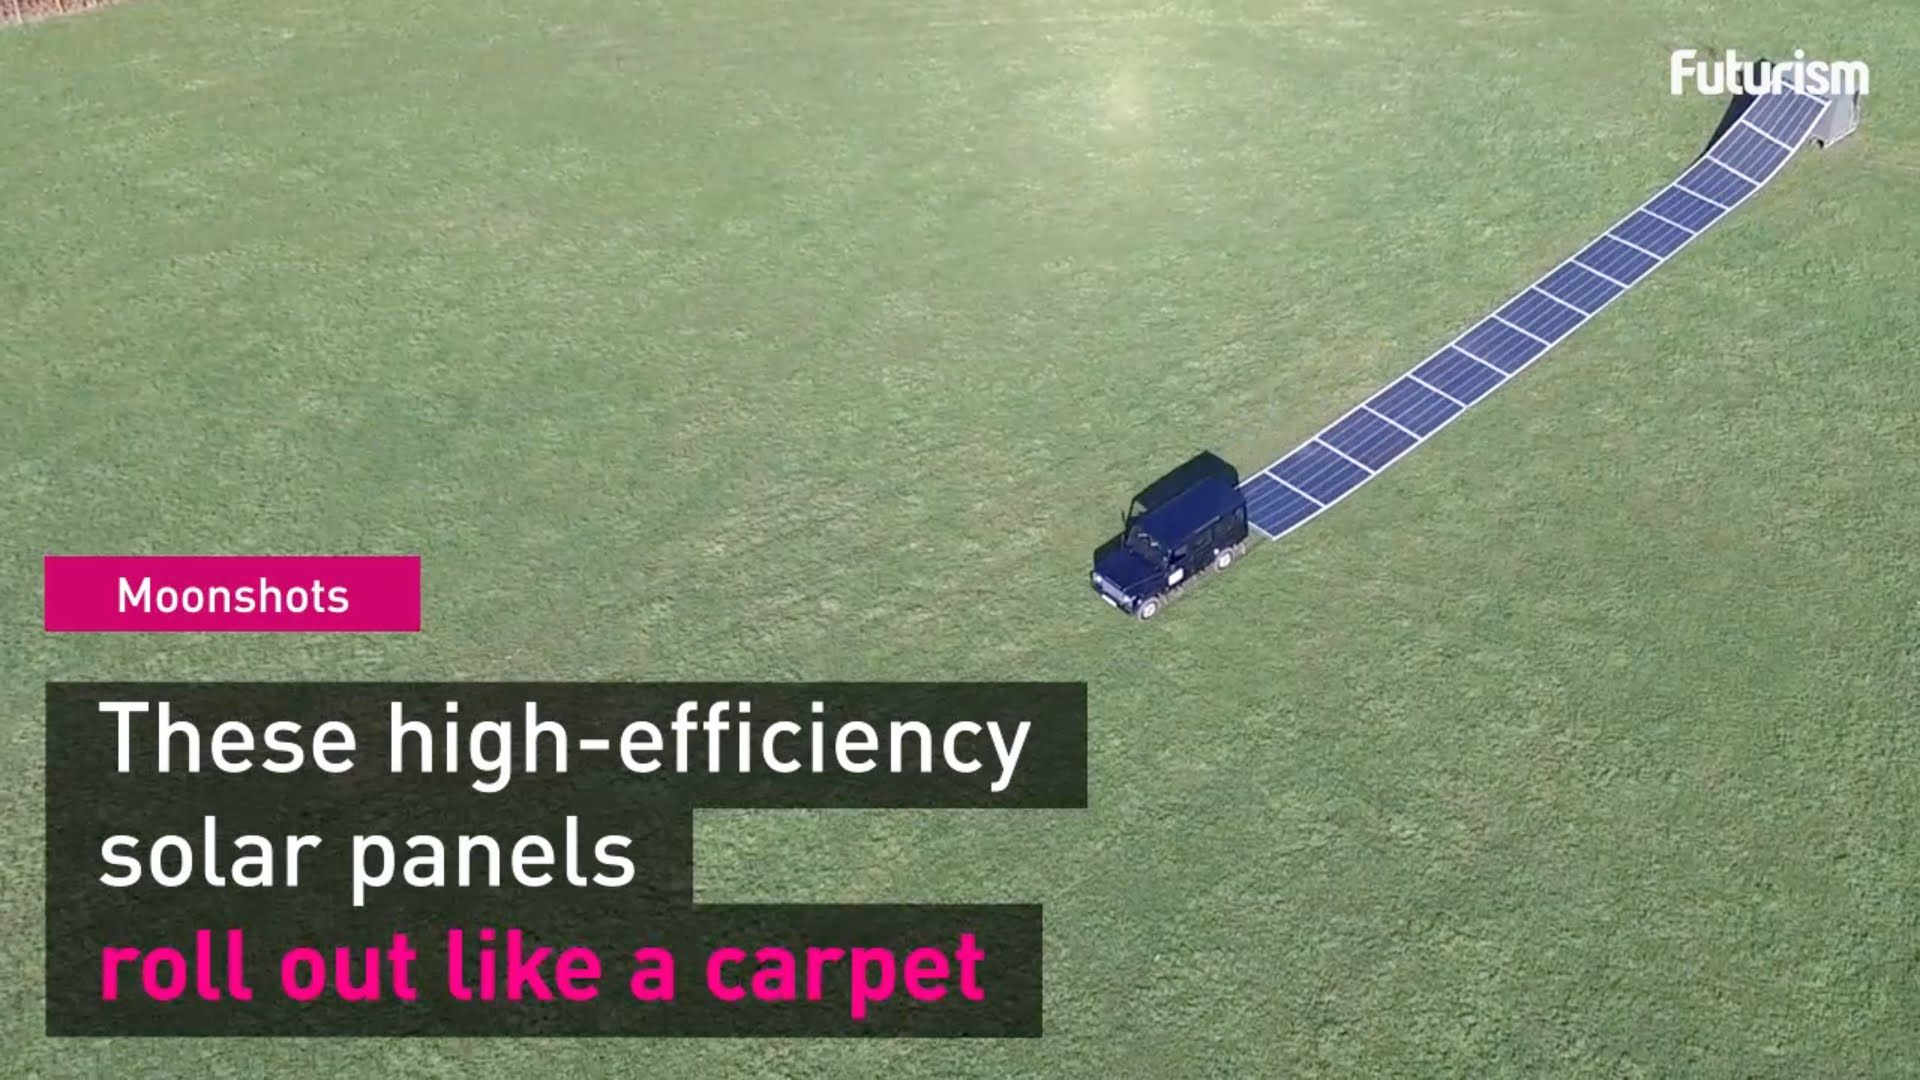 moonshots these solar panels roll out like carpet and can save